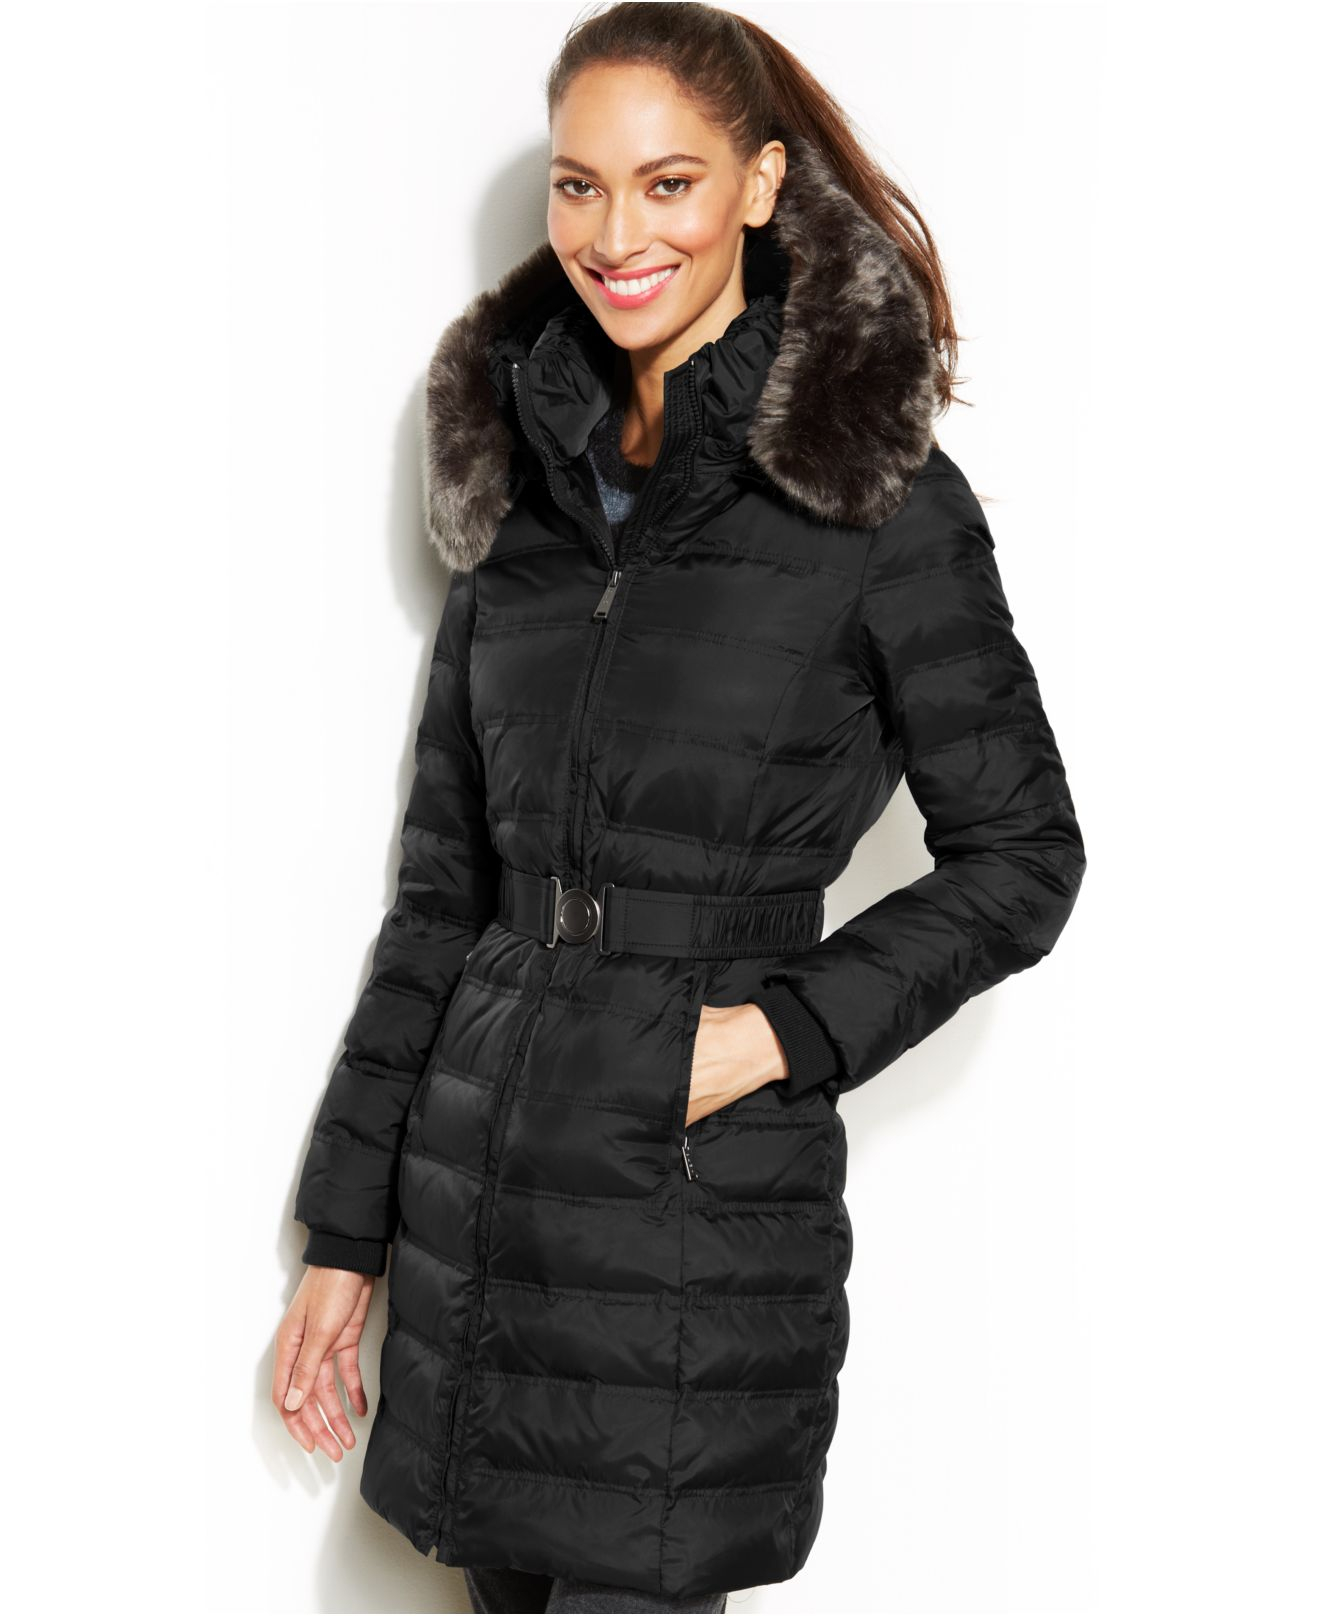 b16be4d876c Lyst - DKNY Hooded Faux-Fur-Trim Belted Down Puffer Coat in Black